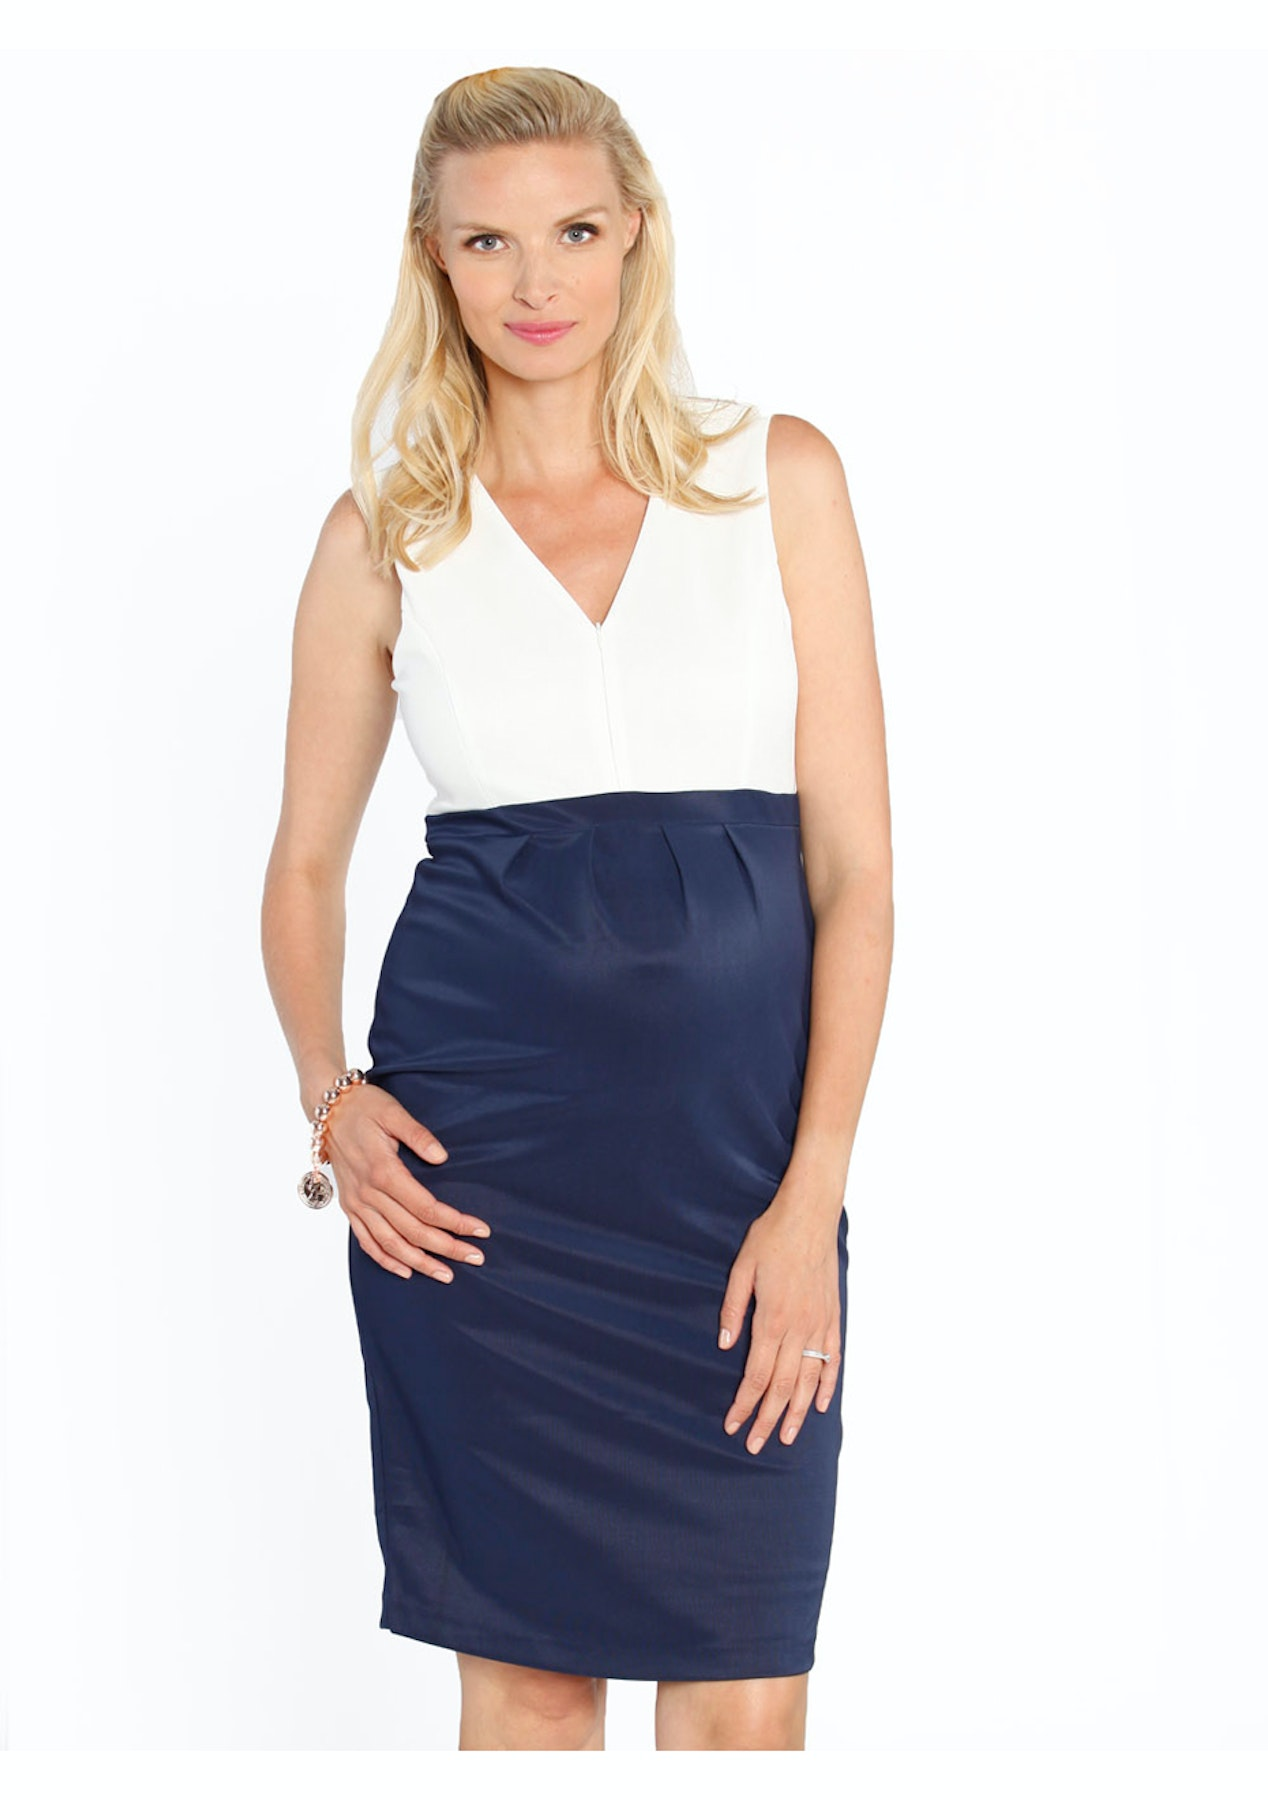 2dfab665bbb Angel Maternity - Sleeveless Ponti Nursing Dress - White   Navy Block -  Love Your Bump - On Trend Maternity Wear - Onceit